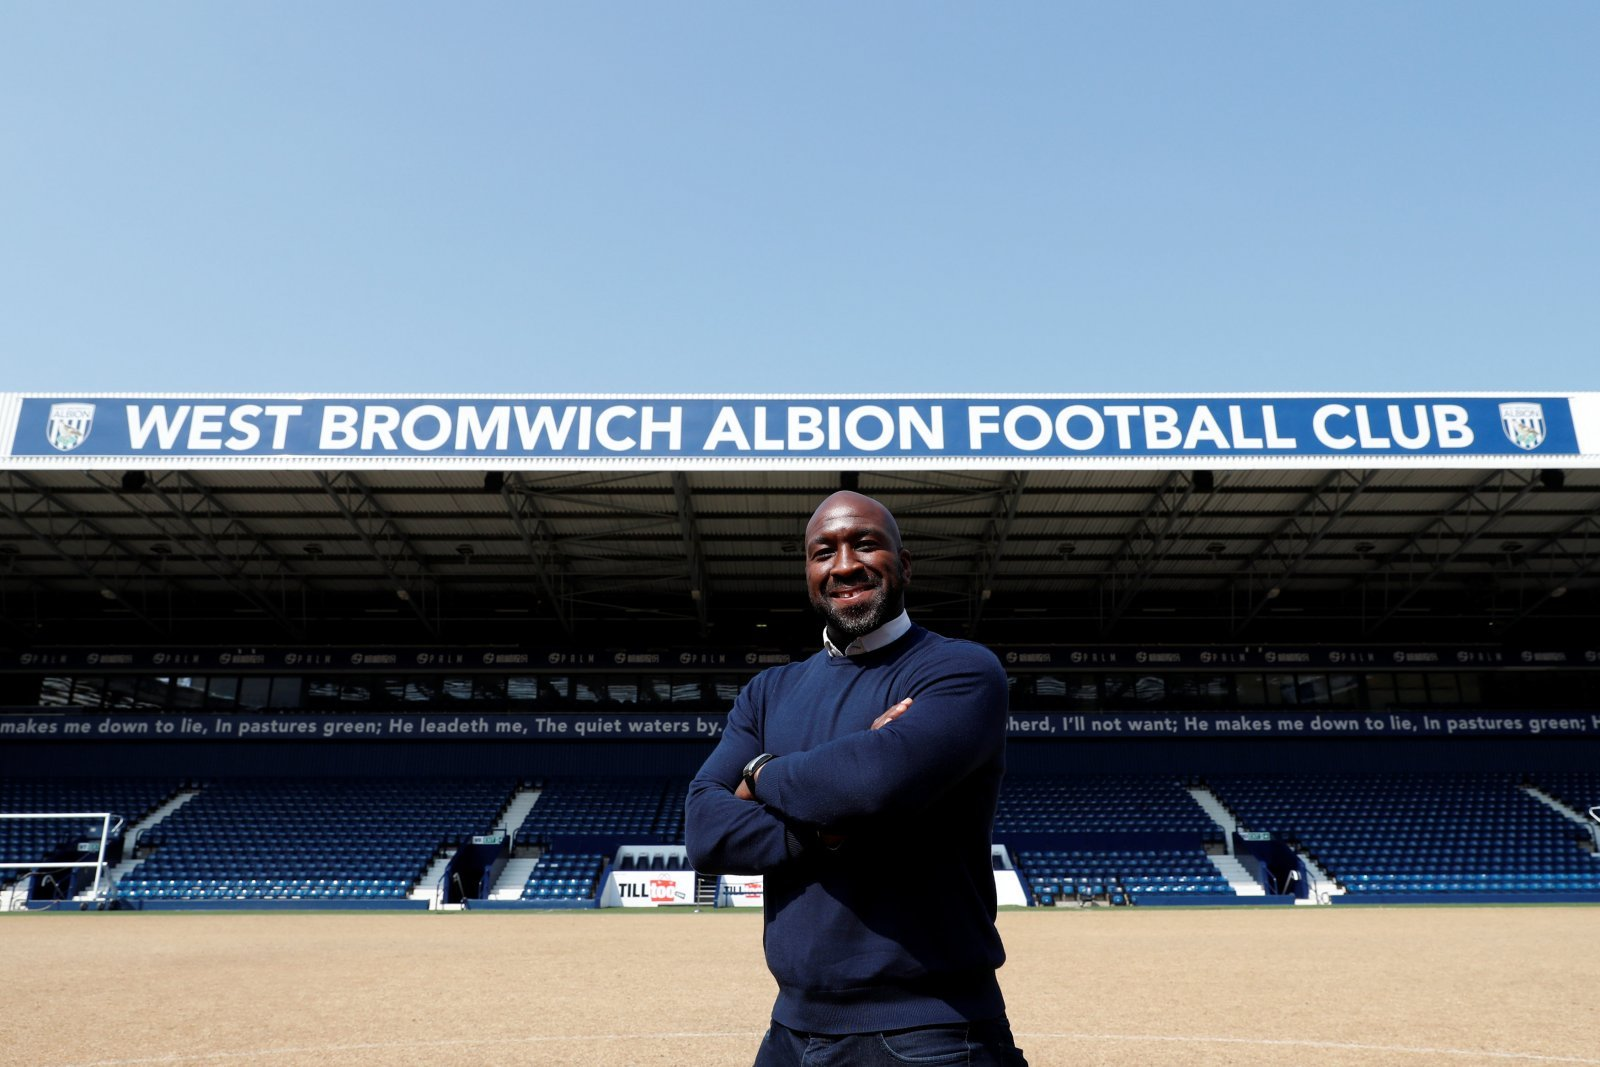 West Brom team news: Moore has no selection concerns ahead of Preston trip